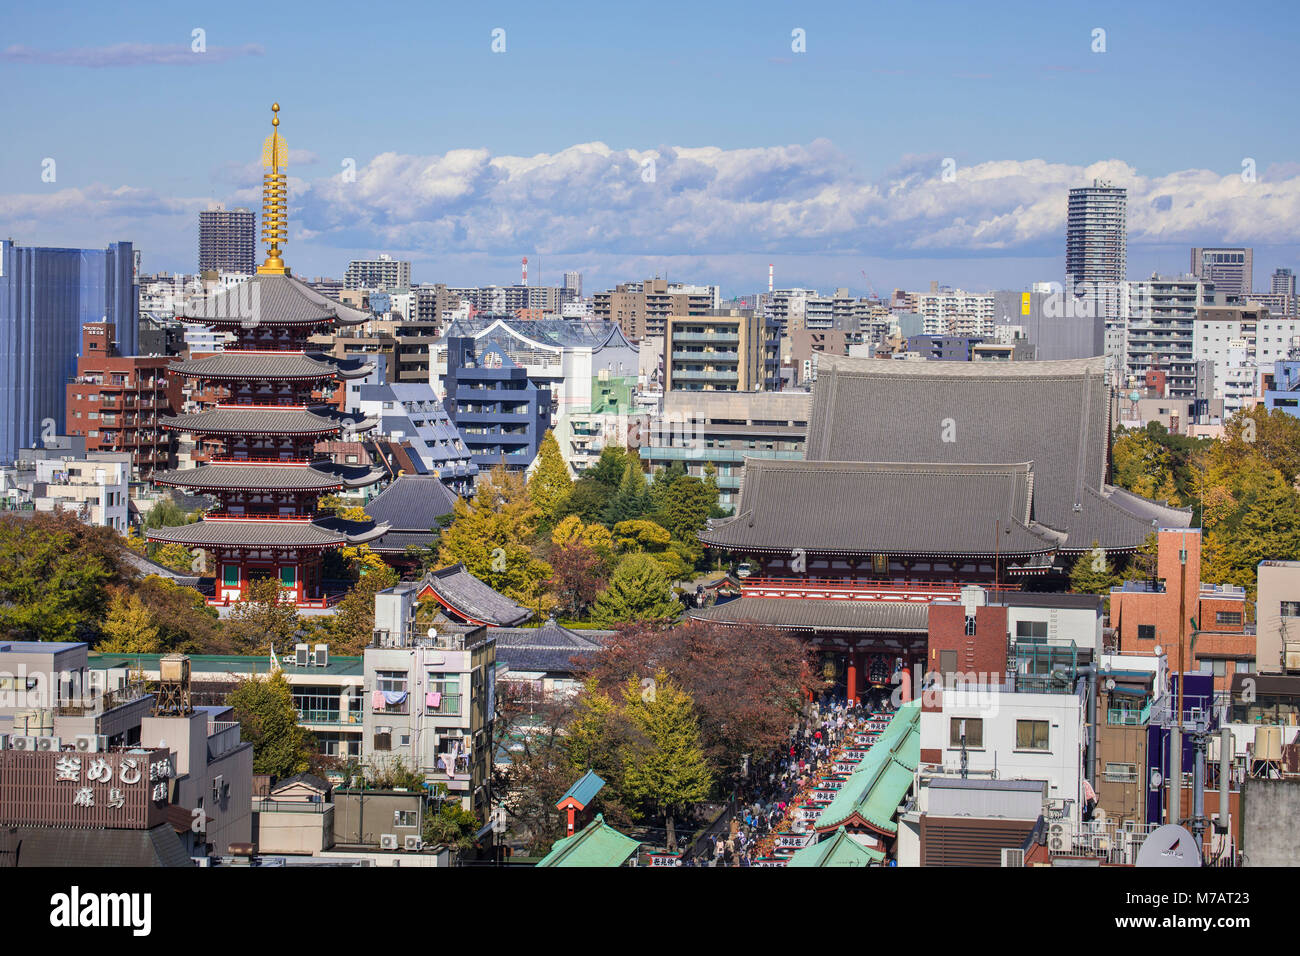 Japan, Tokyo City, Asakusa District, Sensoji Temple - Stock Image